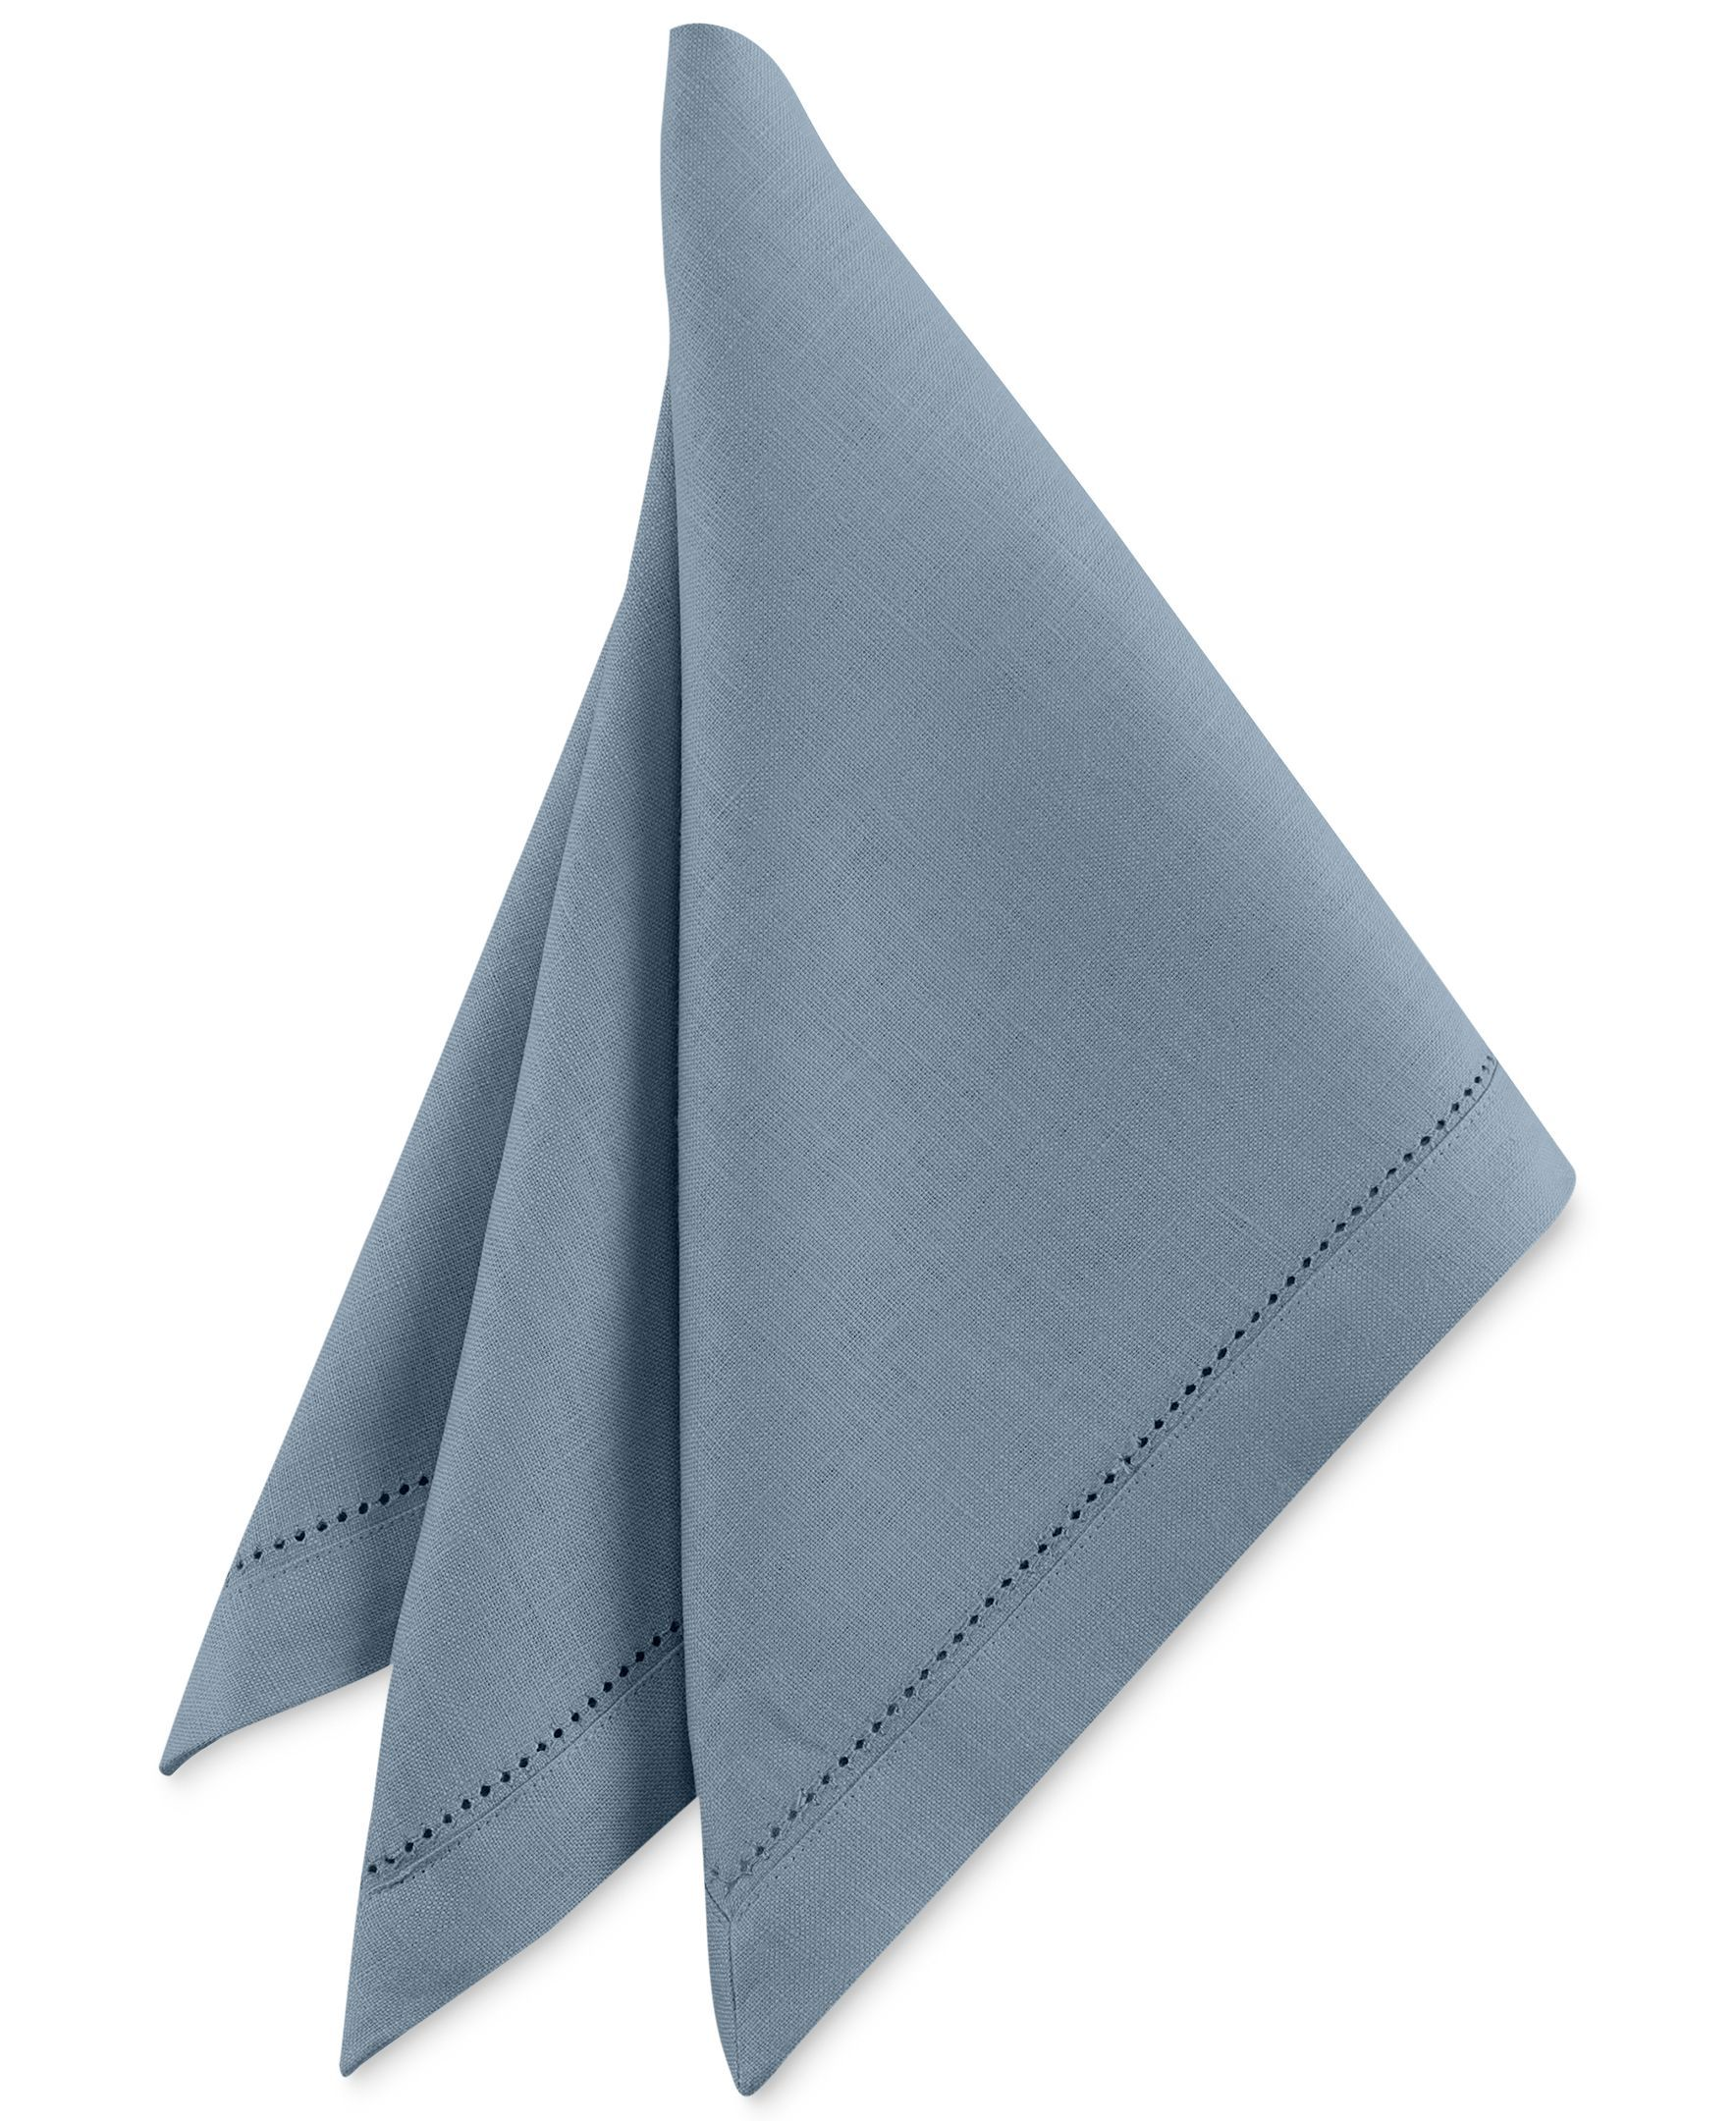 Waterford Addison Napkin